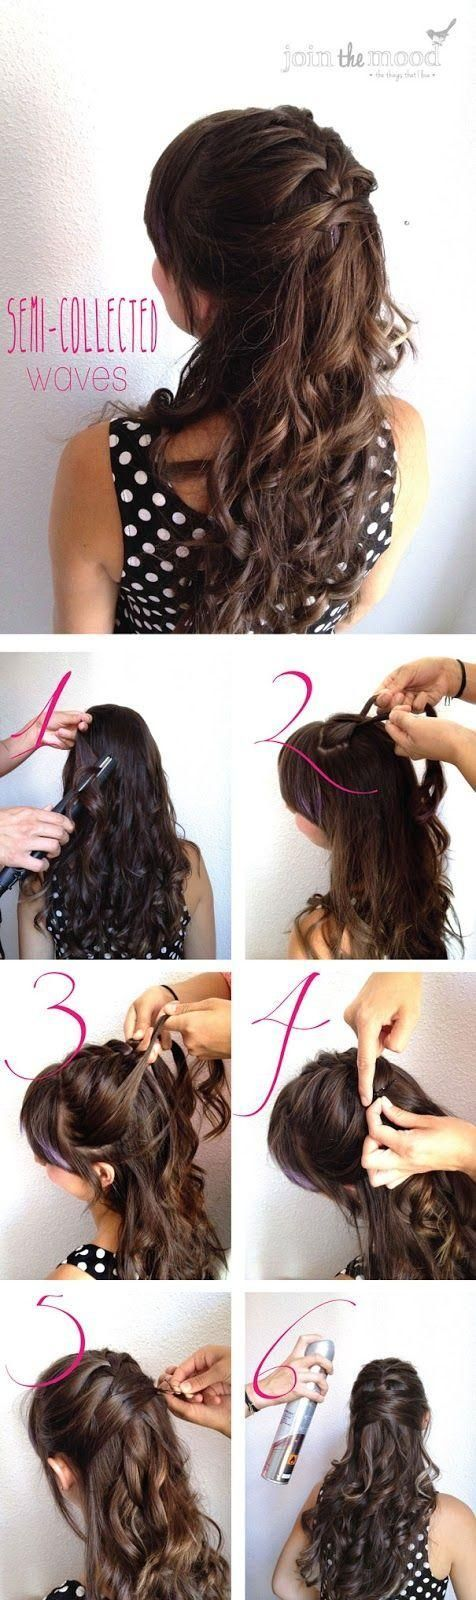 #semicollected #fashionable #hairstyles #tutorials #halfdown